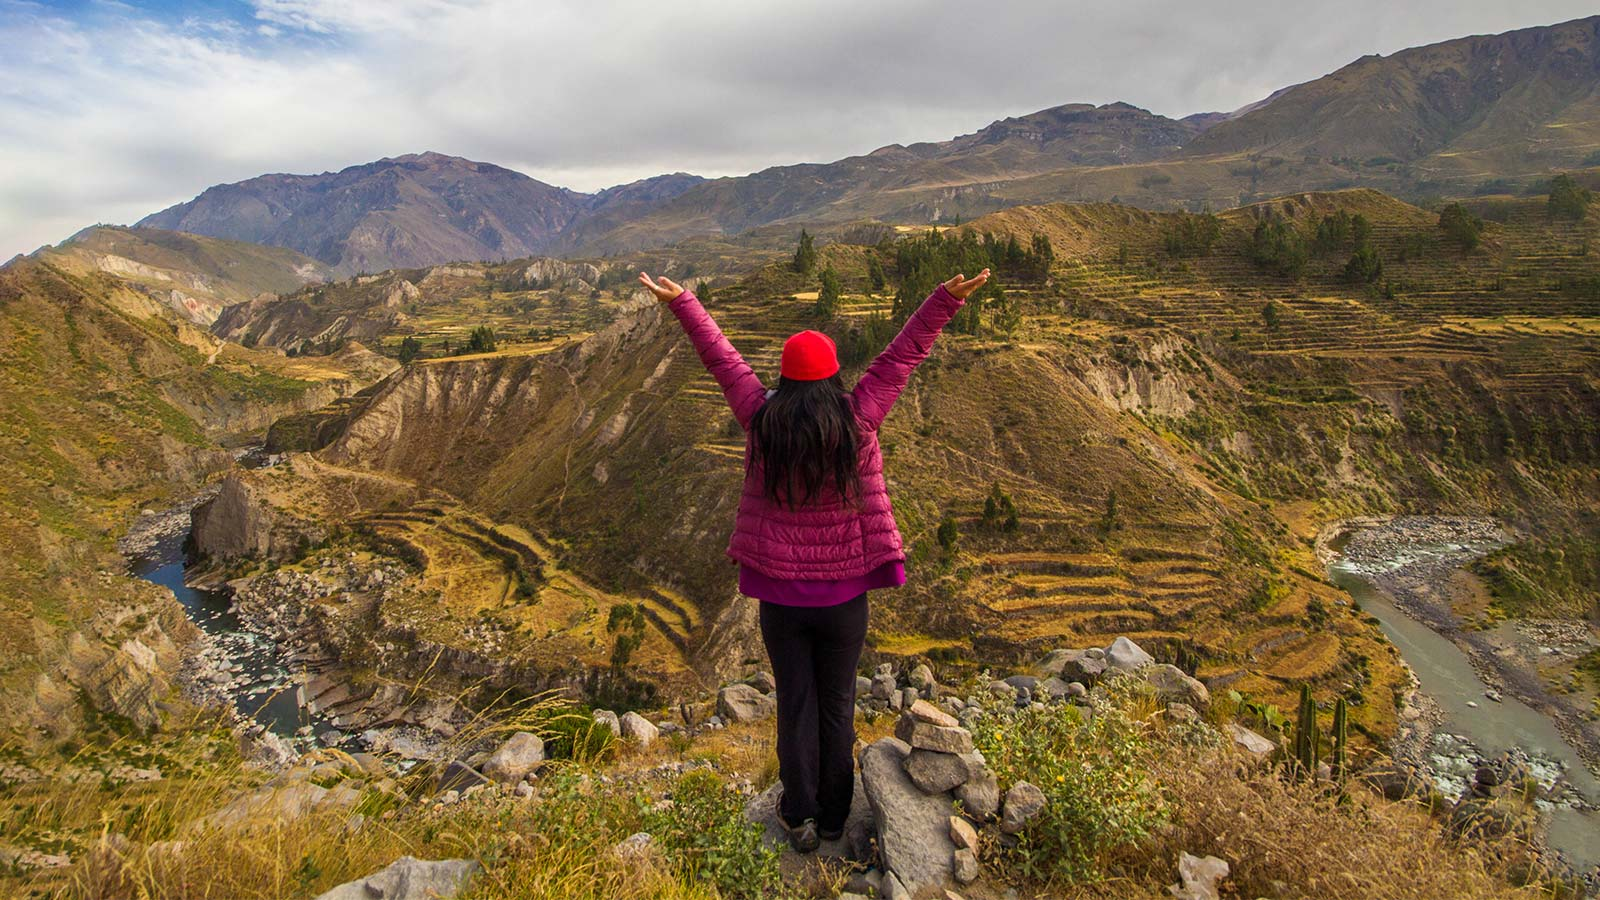 Figuring out what to pack for a family vacation in Peru can be a struggle. We've set up this Peru packing list to help families figure out what they need.